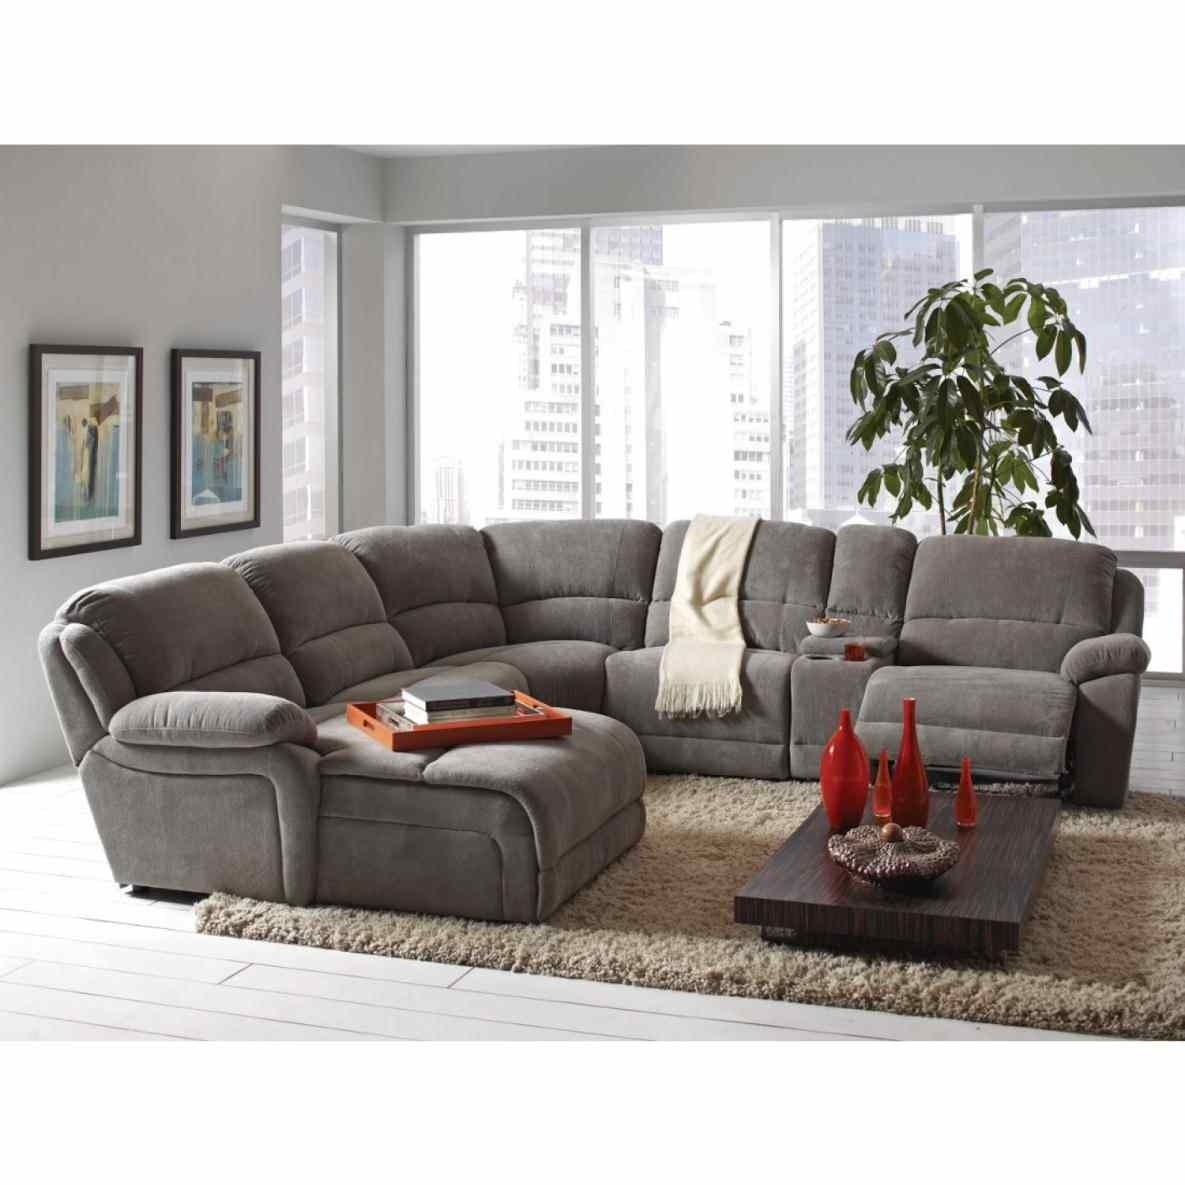 Sectional Sofa : Ashley Leather Sectional Armchair With Cup Holder 5 With Jedd Fabric Reclining Sectional Sofas (Image 9 of 10)